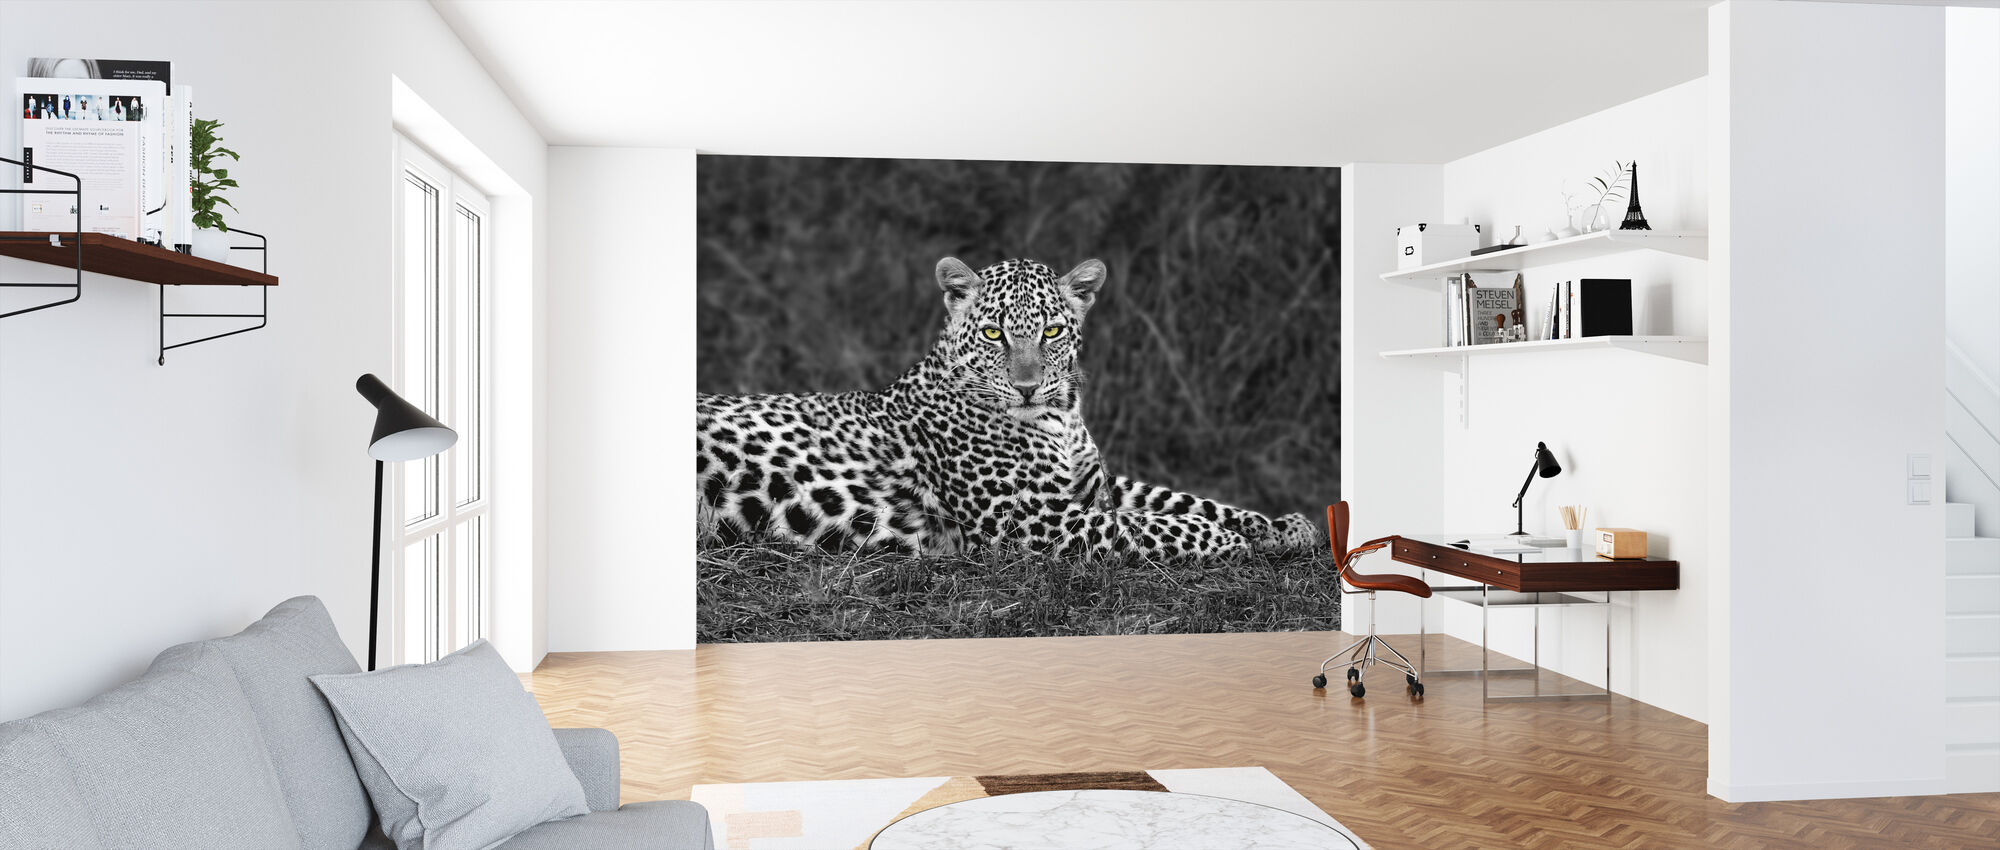 Leopard Portrait - Wallpaper - Office